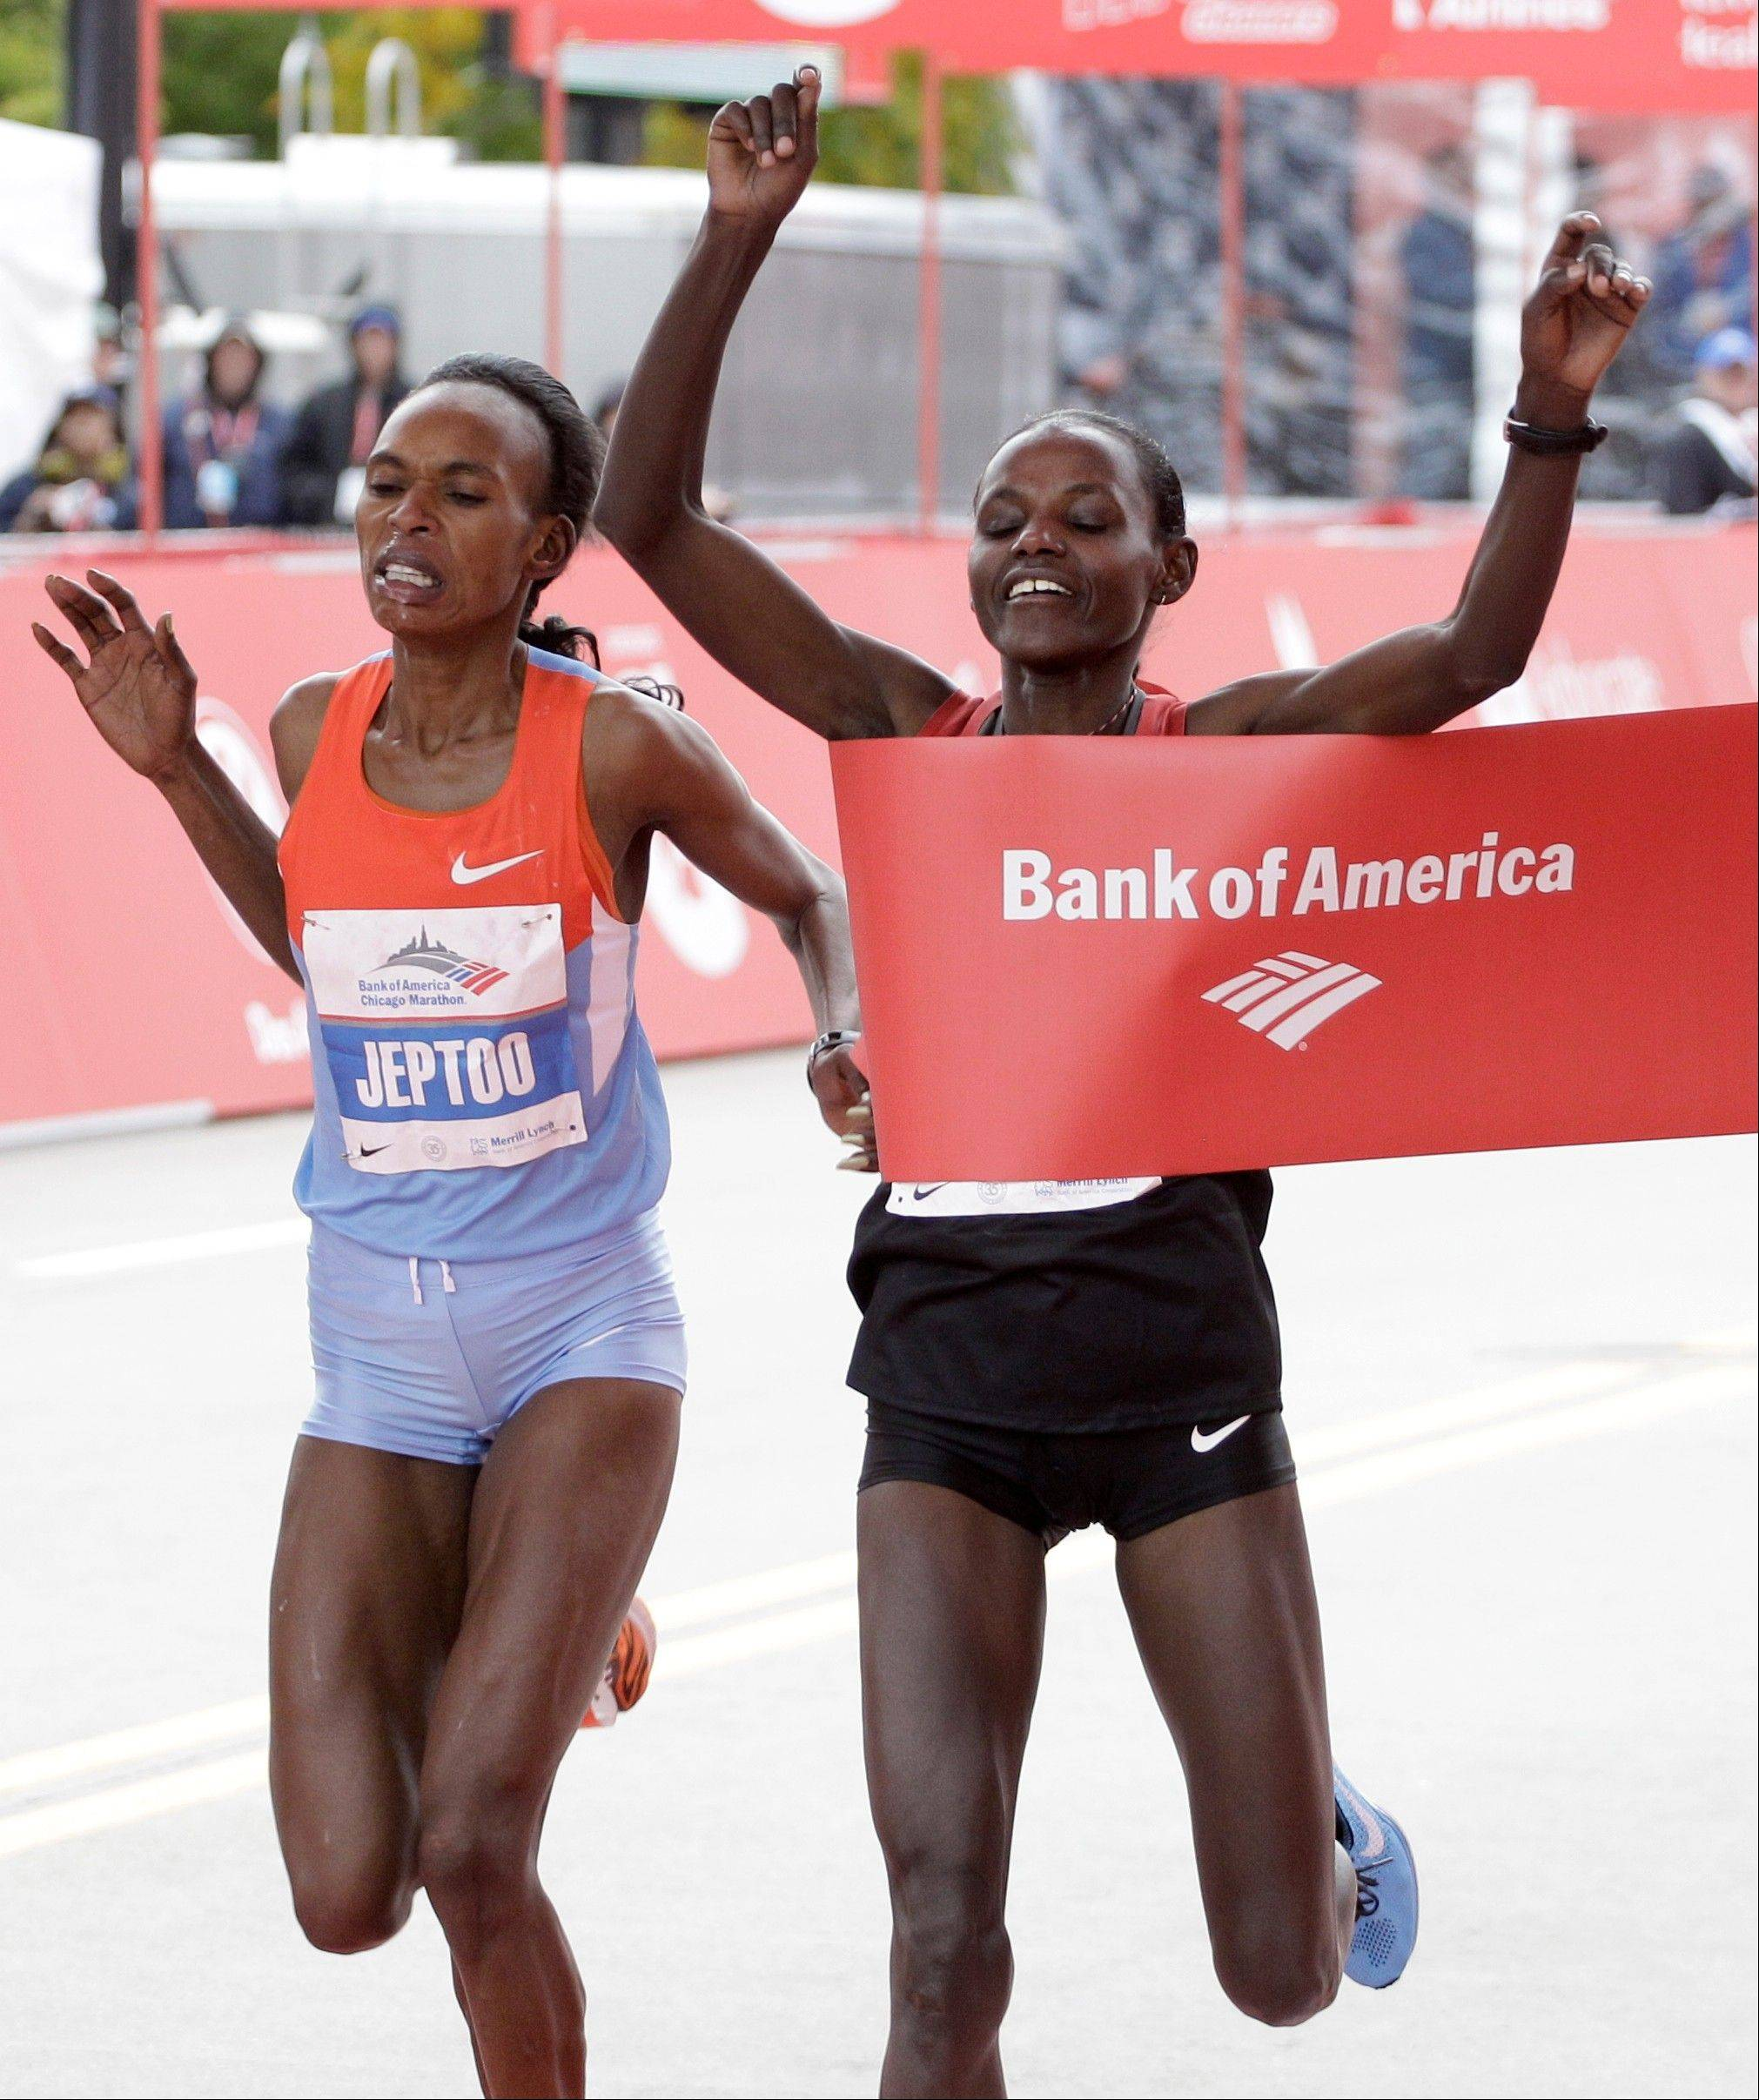 Atsede Baysa of Ethiopia right, edges out Kenya's Rita Jeptoo left, to win the 2012 Chicago Marathon Sunday, Oct. 7, 2012.